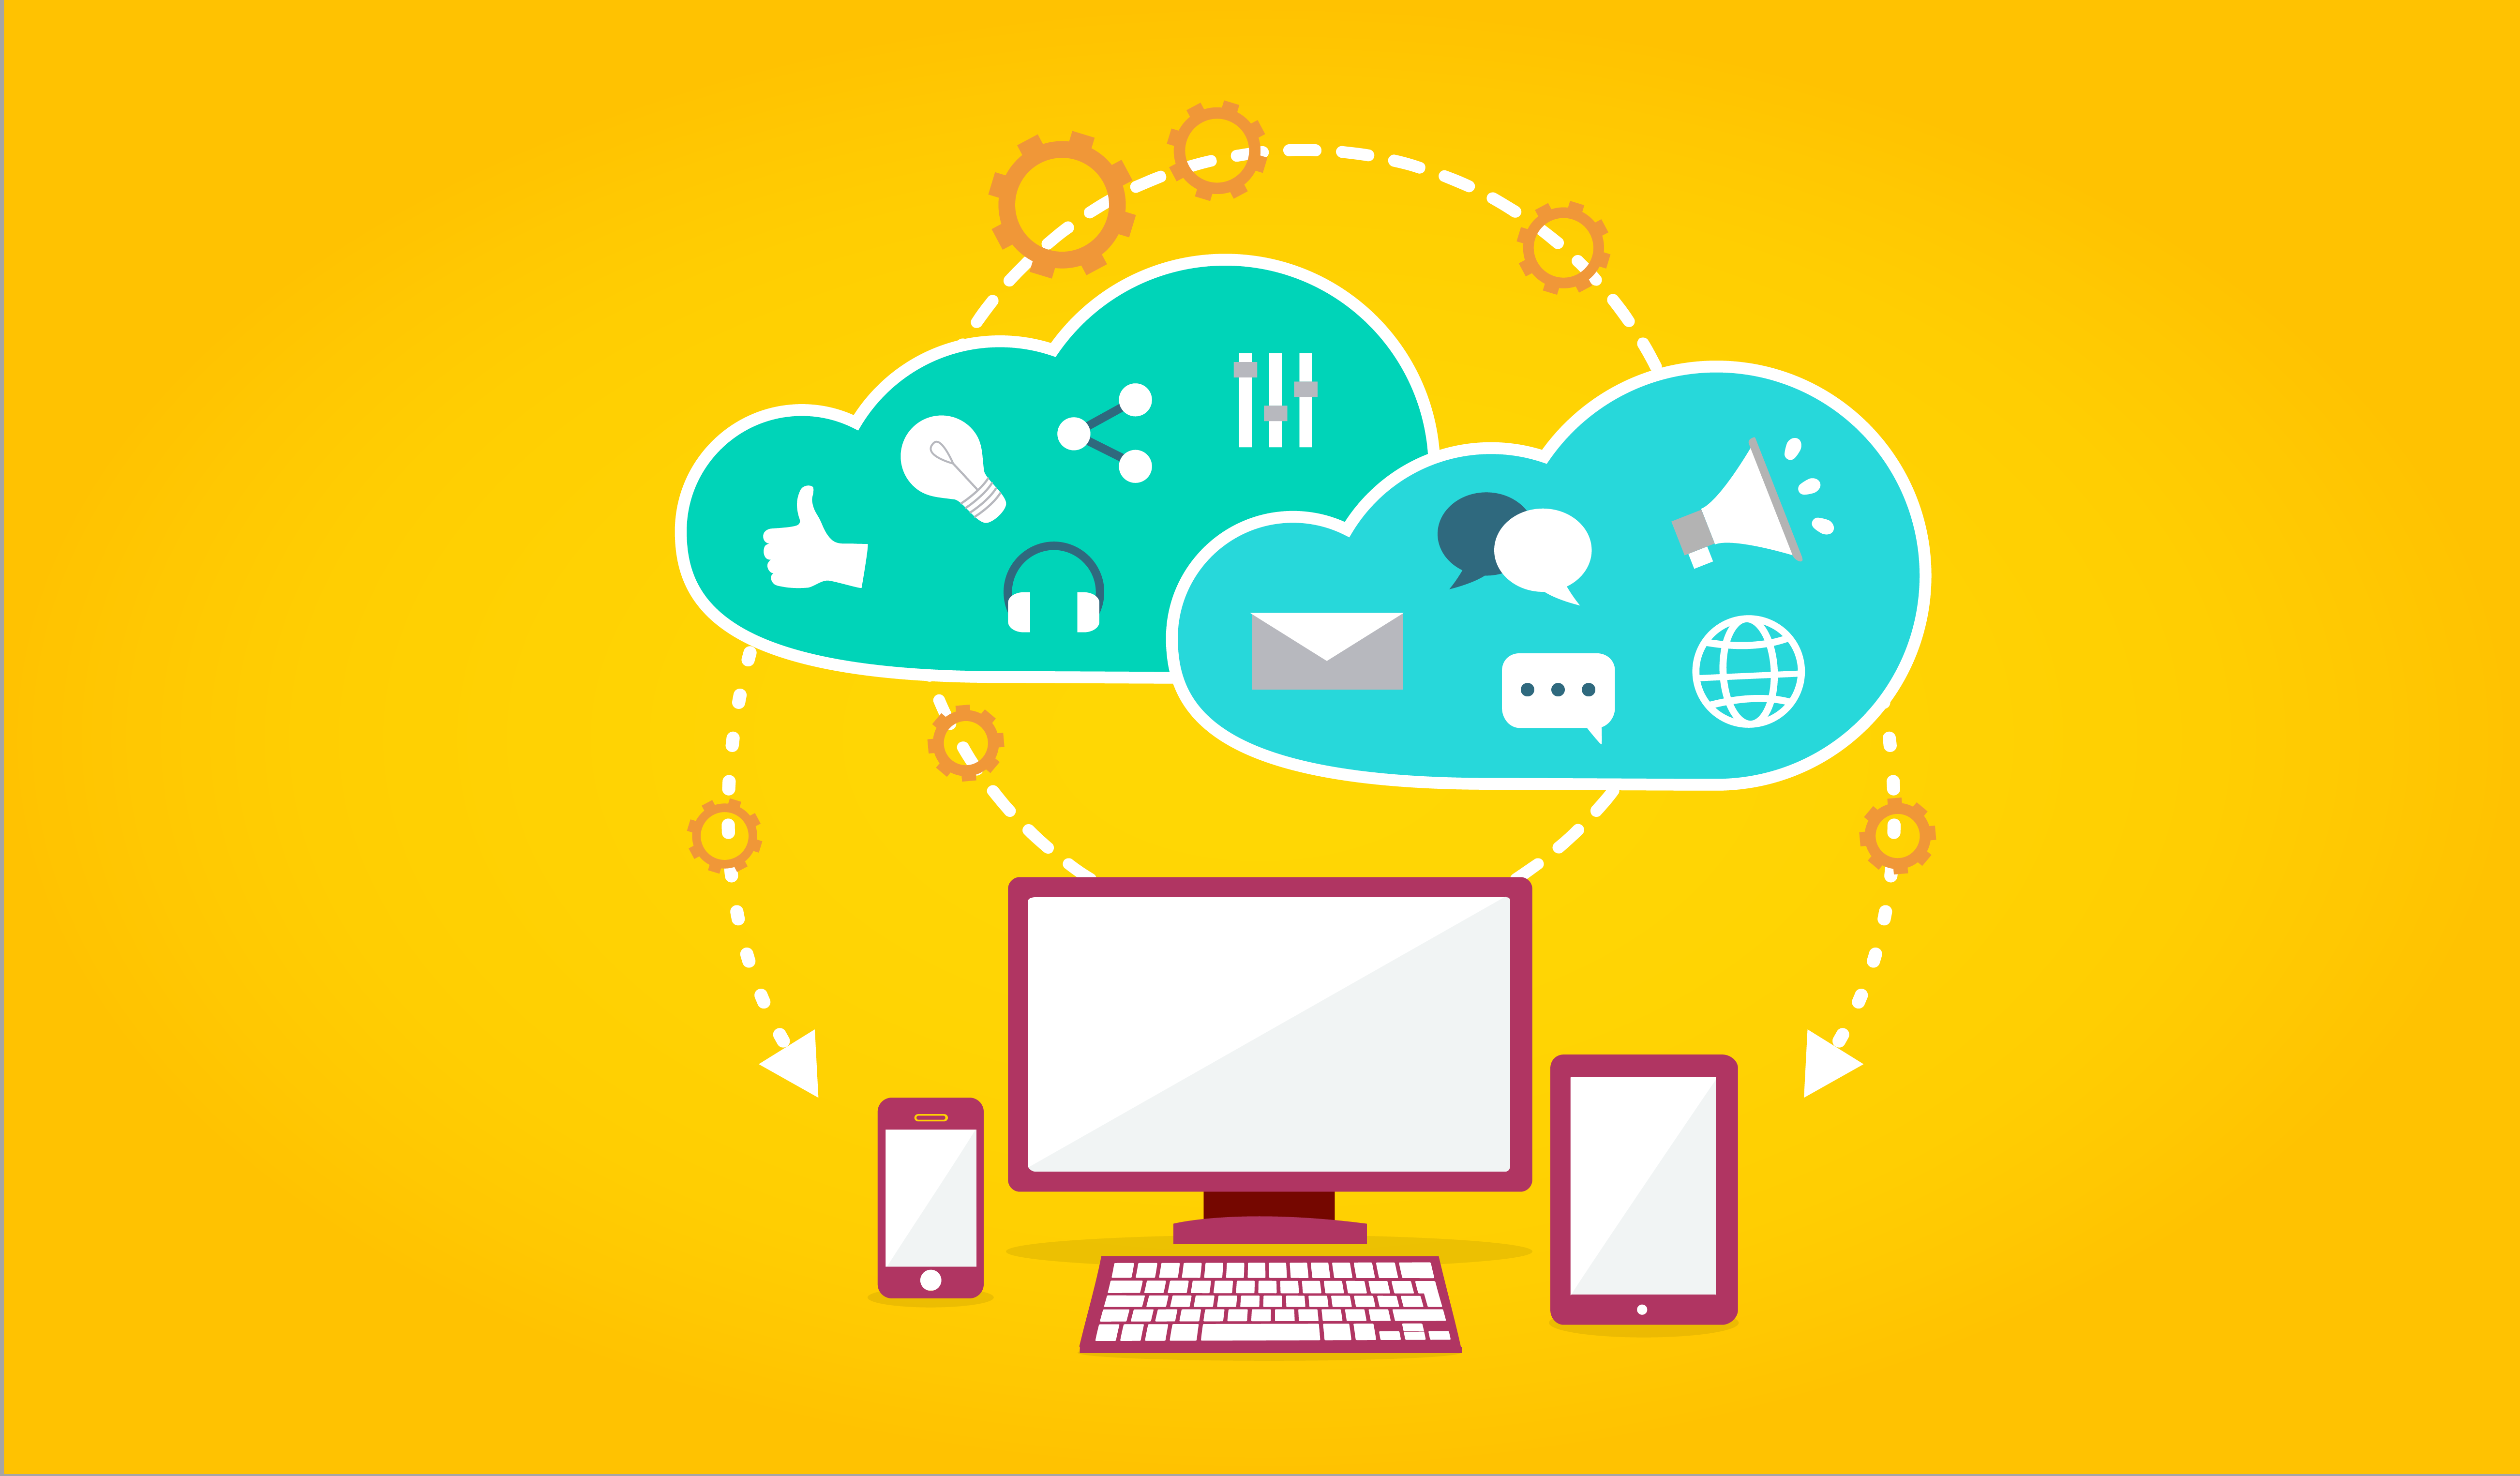 5 issues that can be solved with the cloud